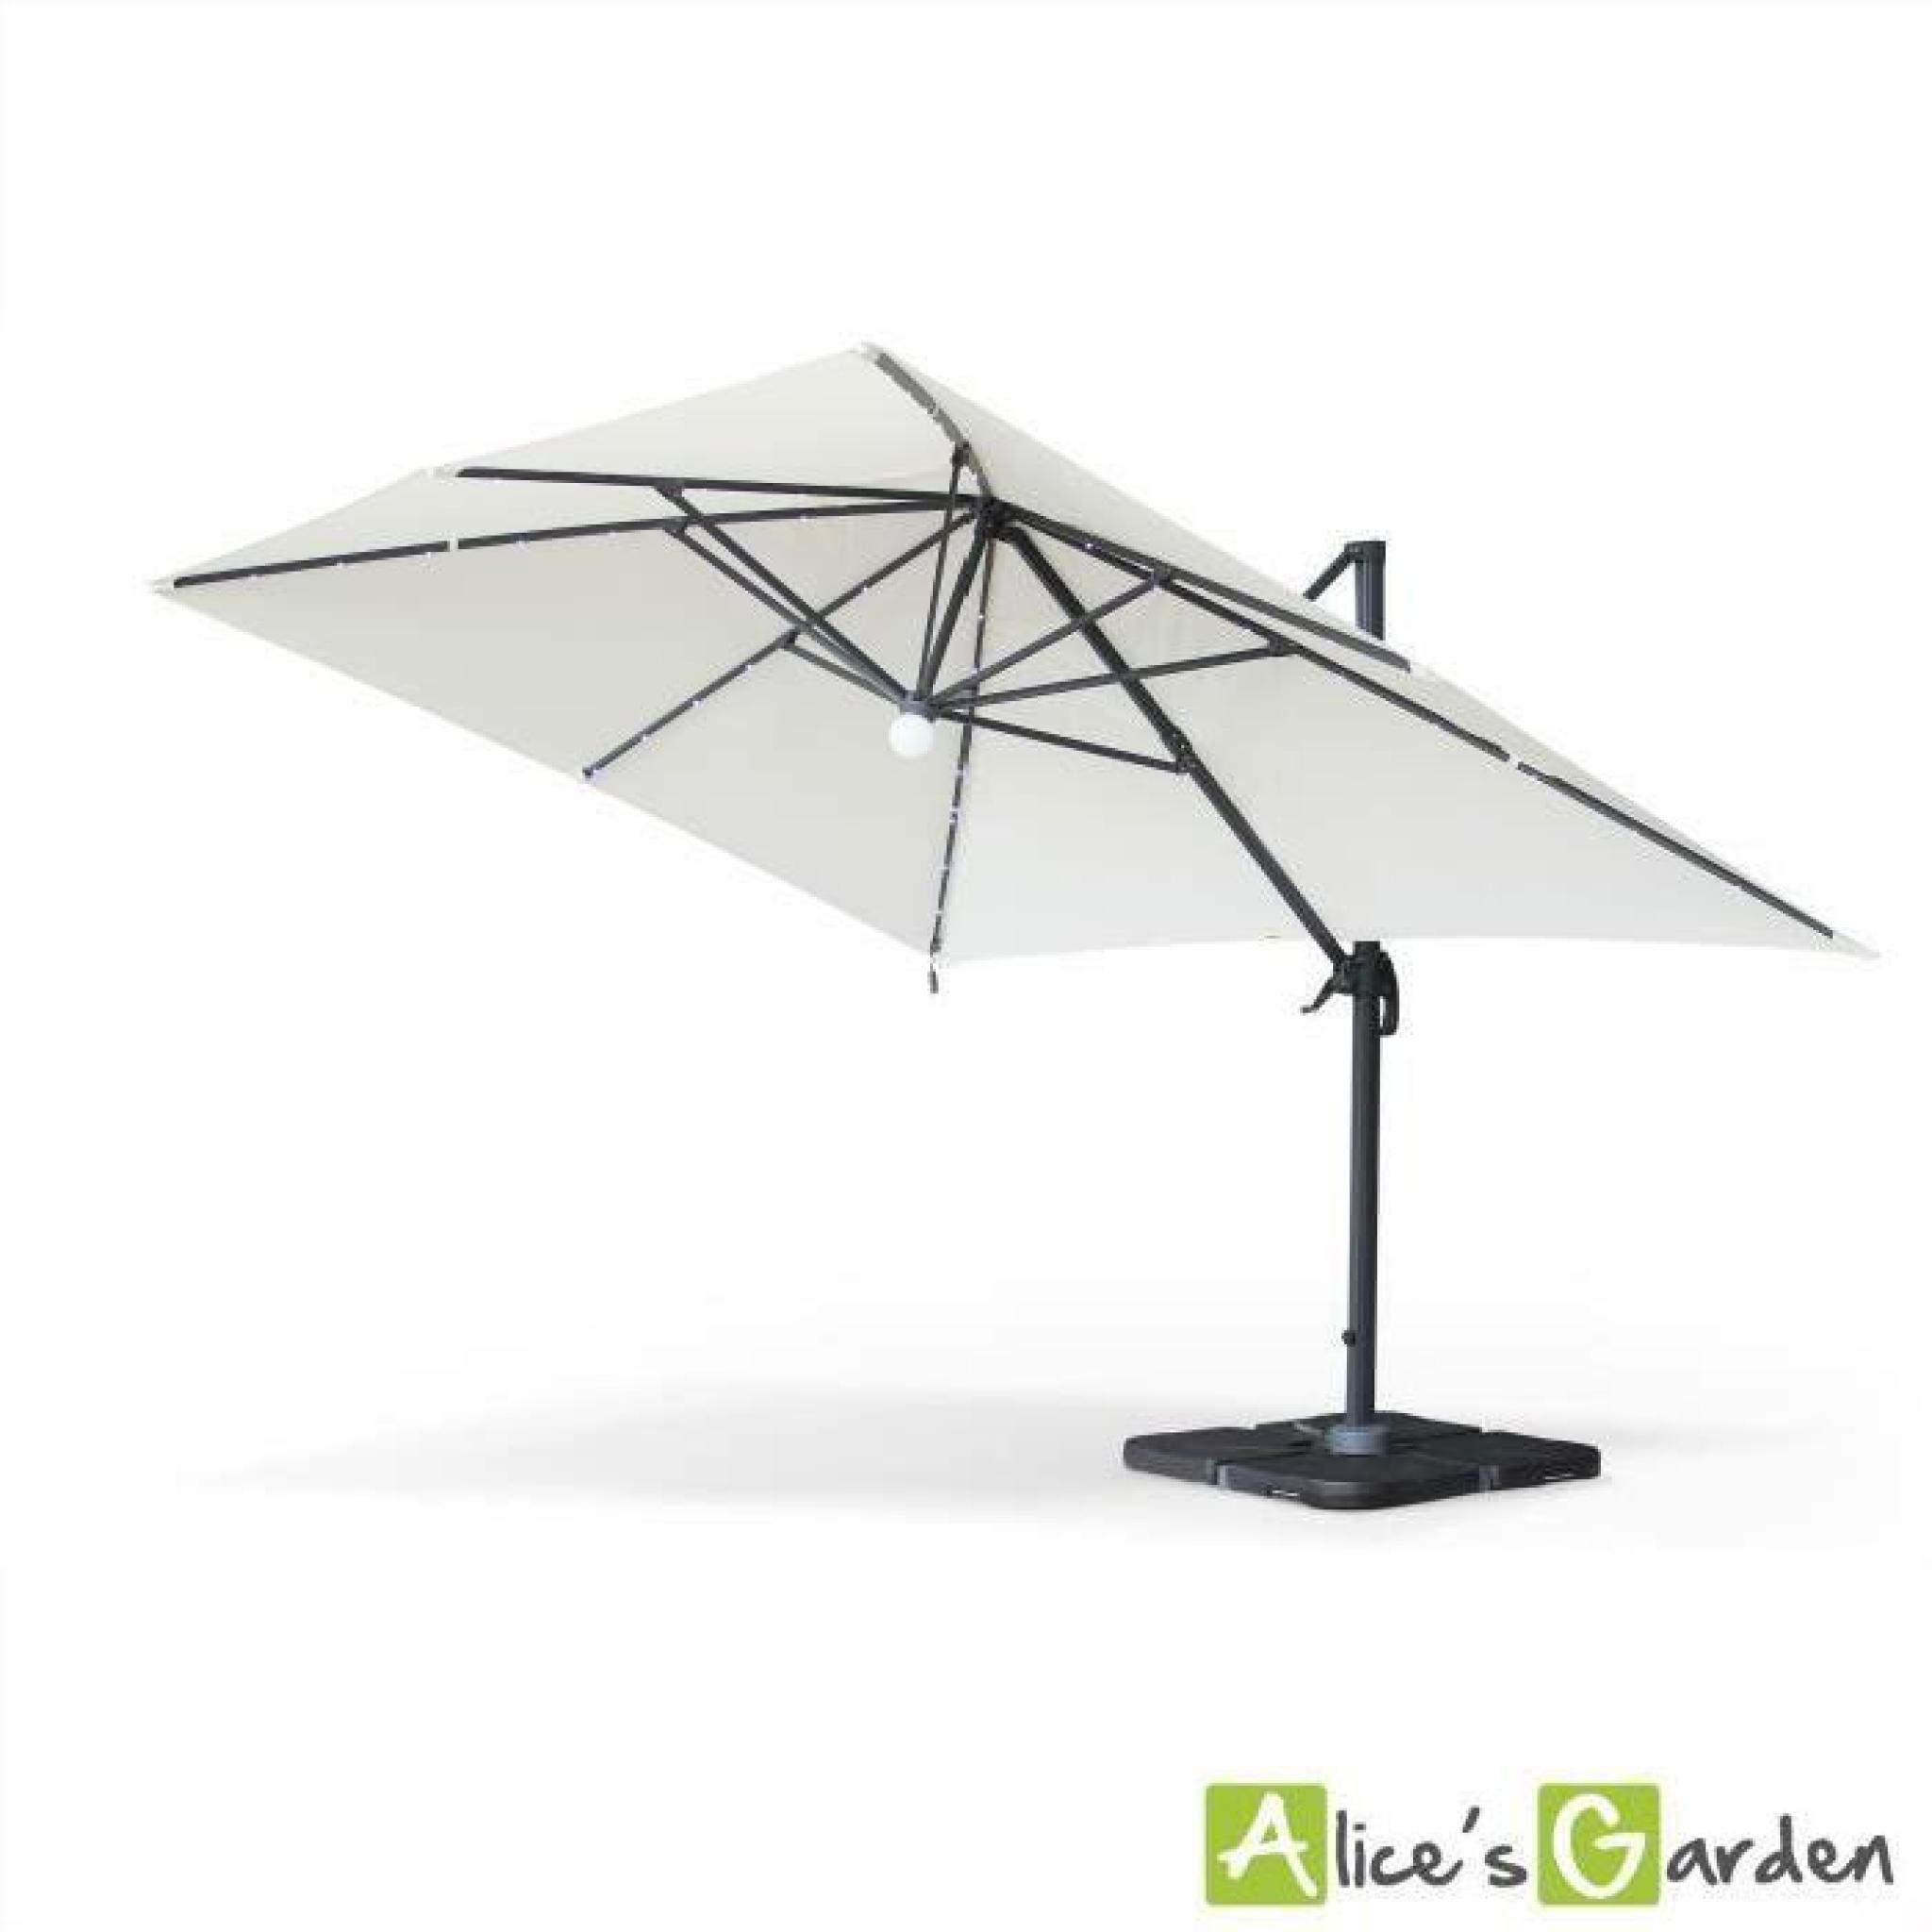 luce parasol d port 3x4m avec led cru achat vente parasol deporte pas cher. Black Bedroom Furniture Sets. Home Design Ideas